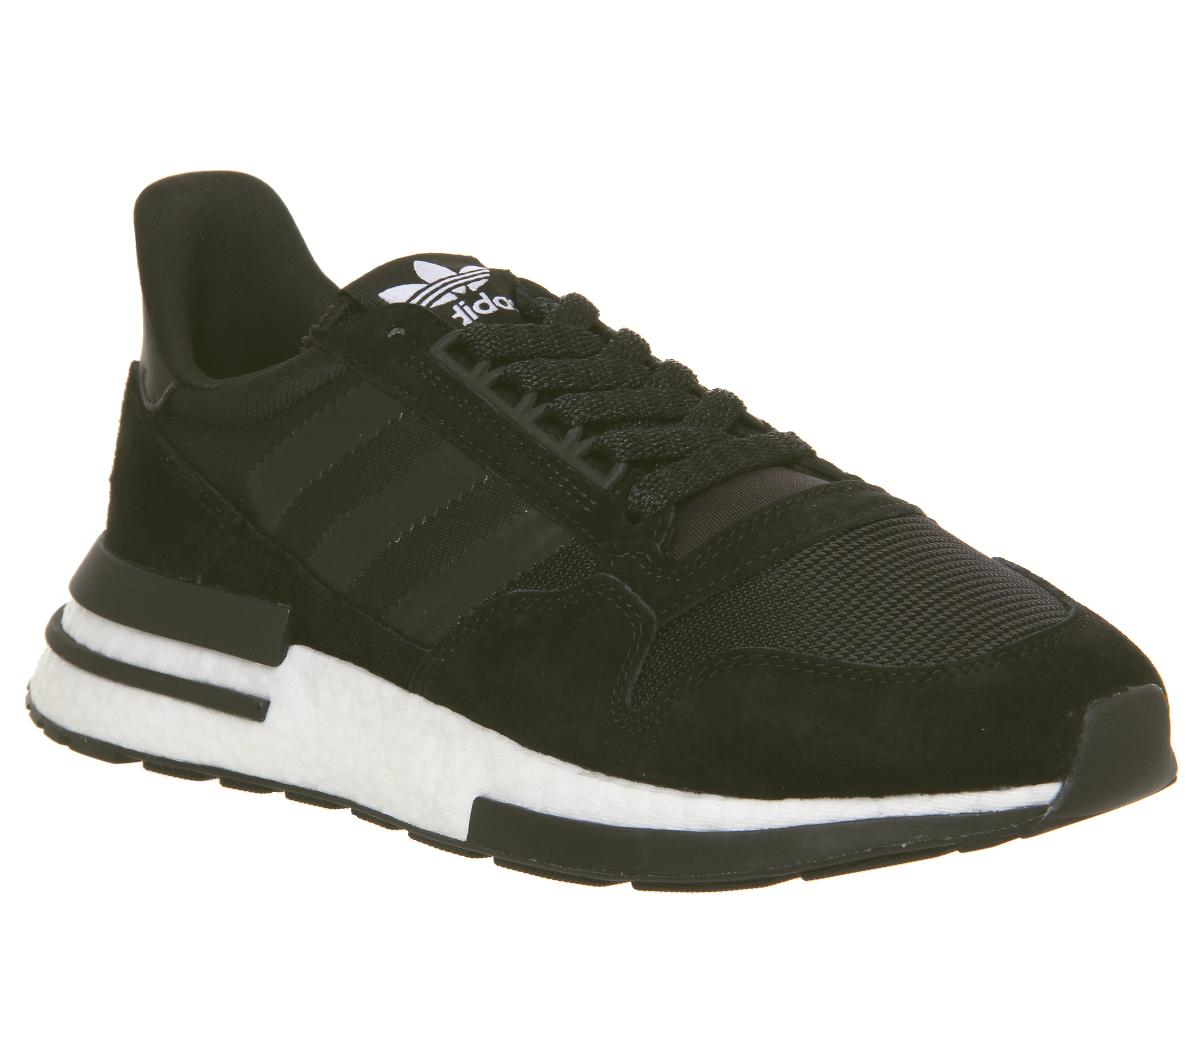 Zx500 Rm Trainers